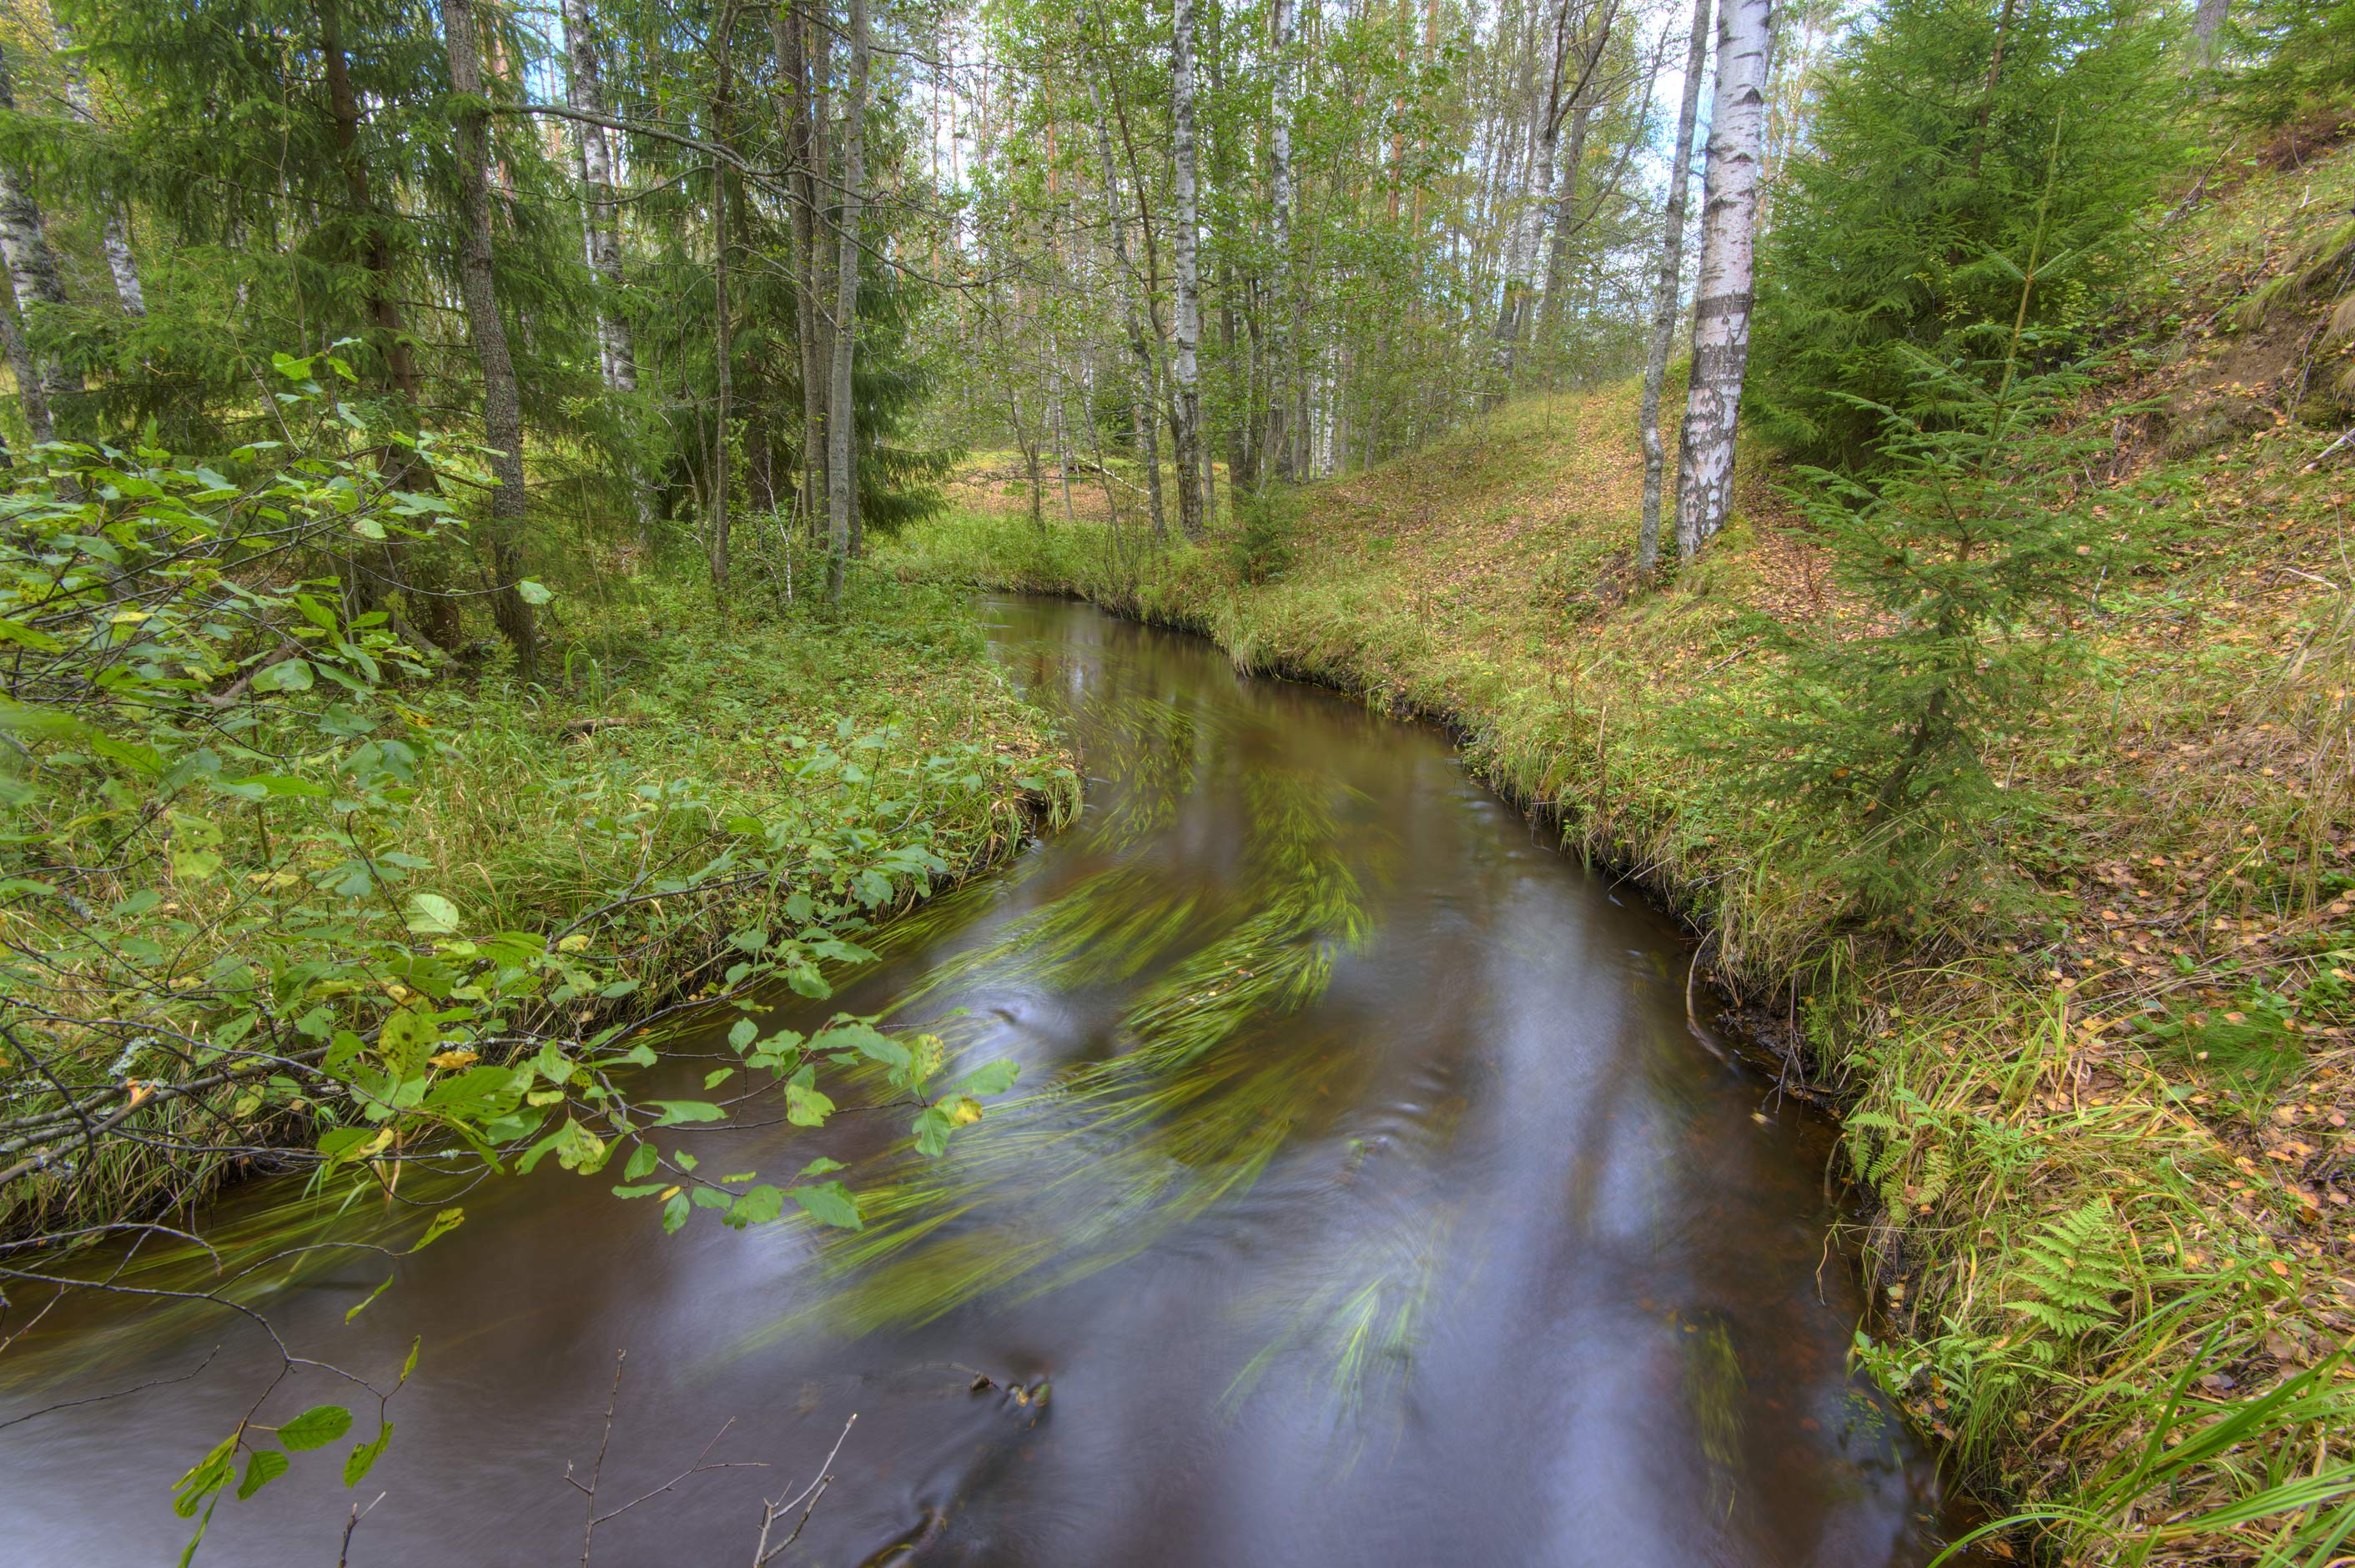 Bend of Prytky Creek near Orekhovo, 40 miles north from St.Petersburg. Russia